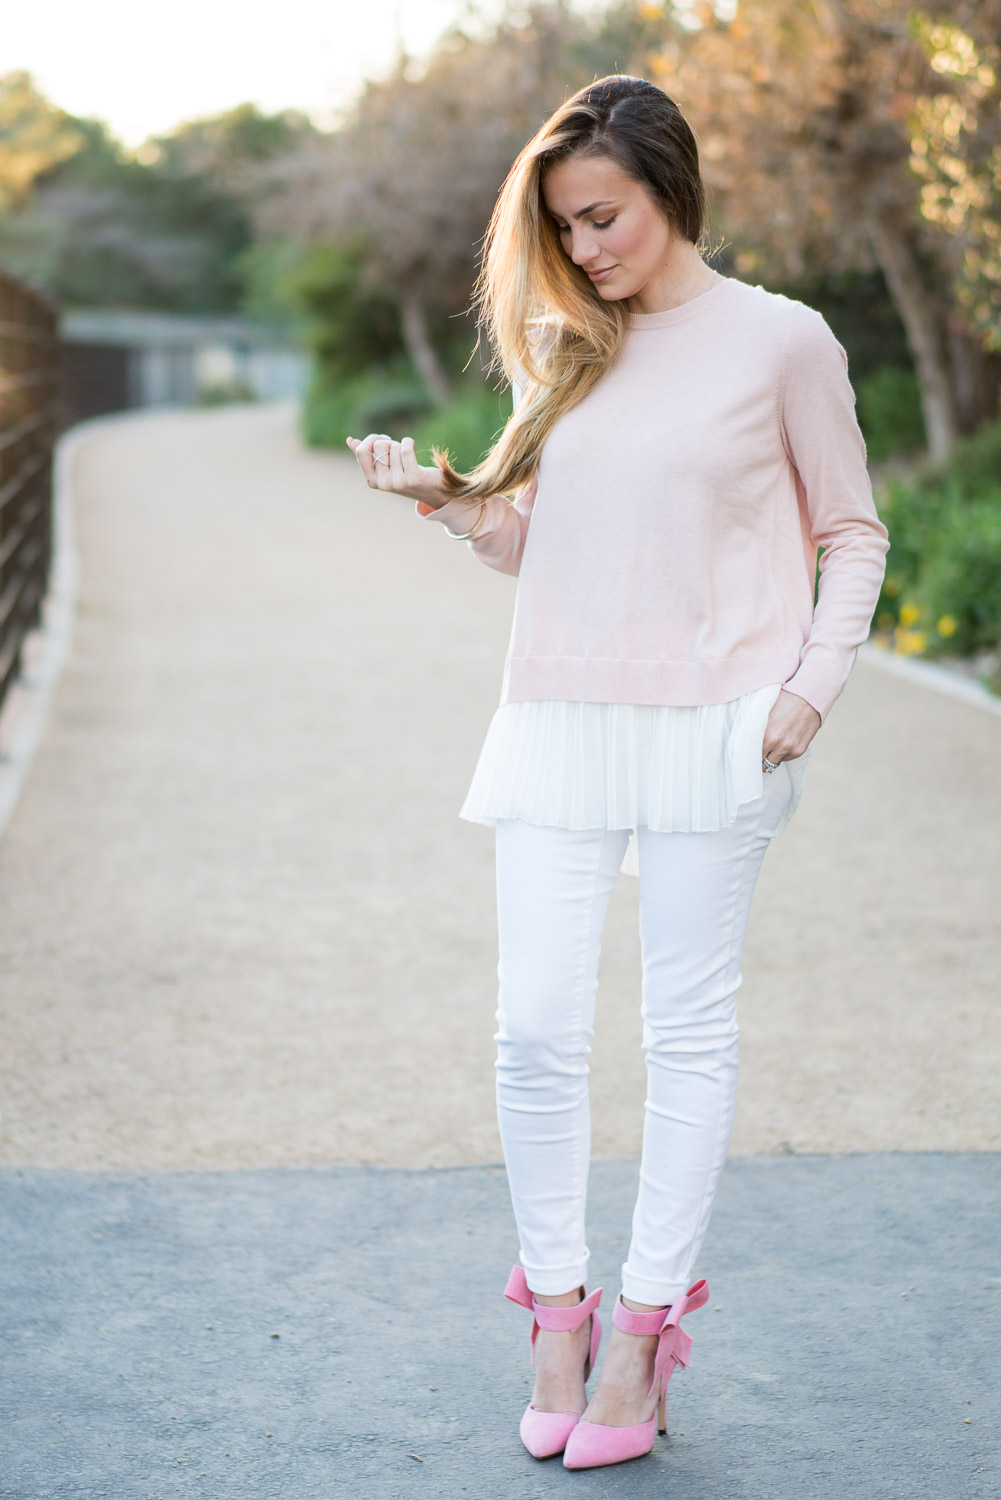 Ruffle Hem Shirt, Lilly Pulitzer White Jeans and Pink Bow Heels